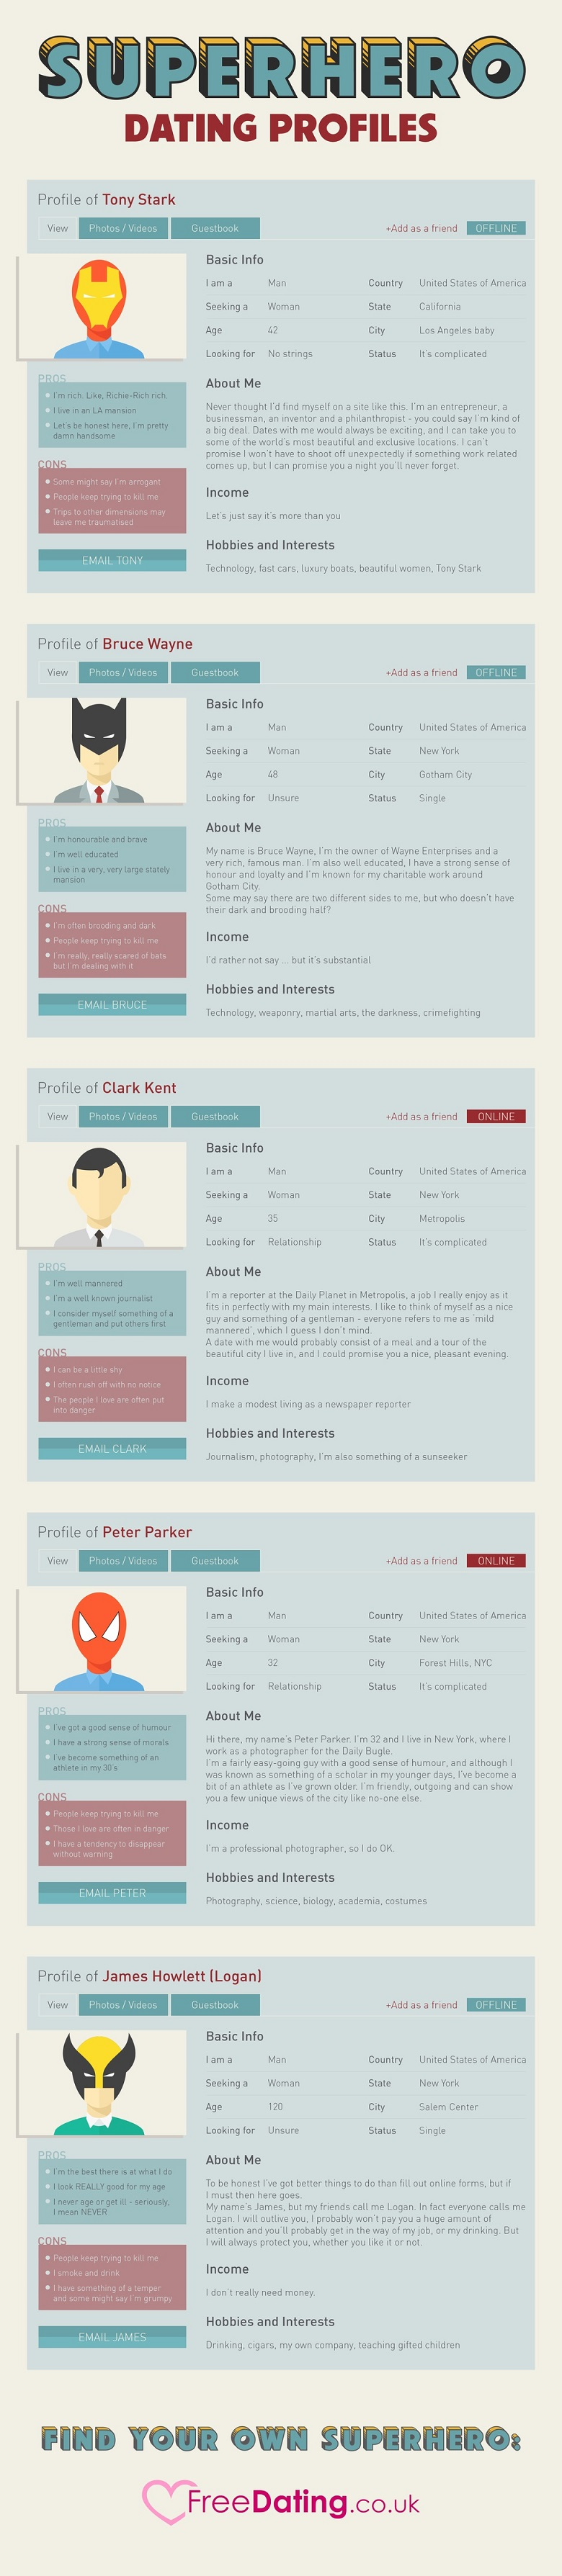 Superhero Dating Profiles infographic